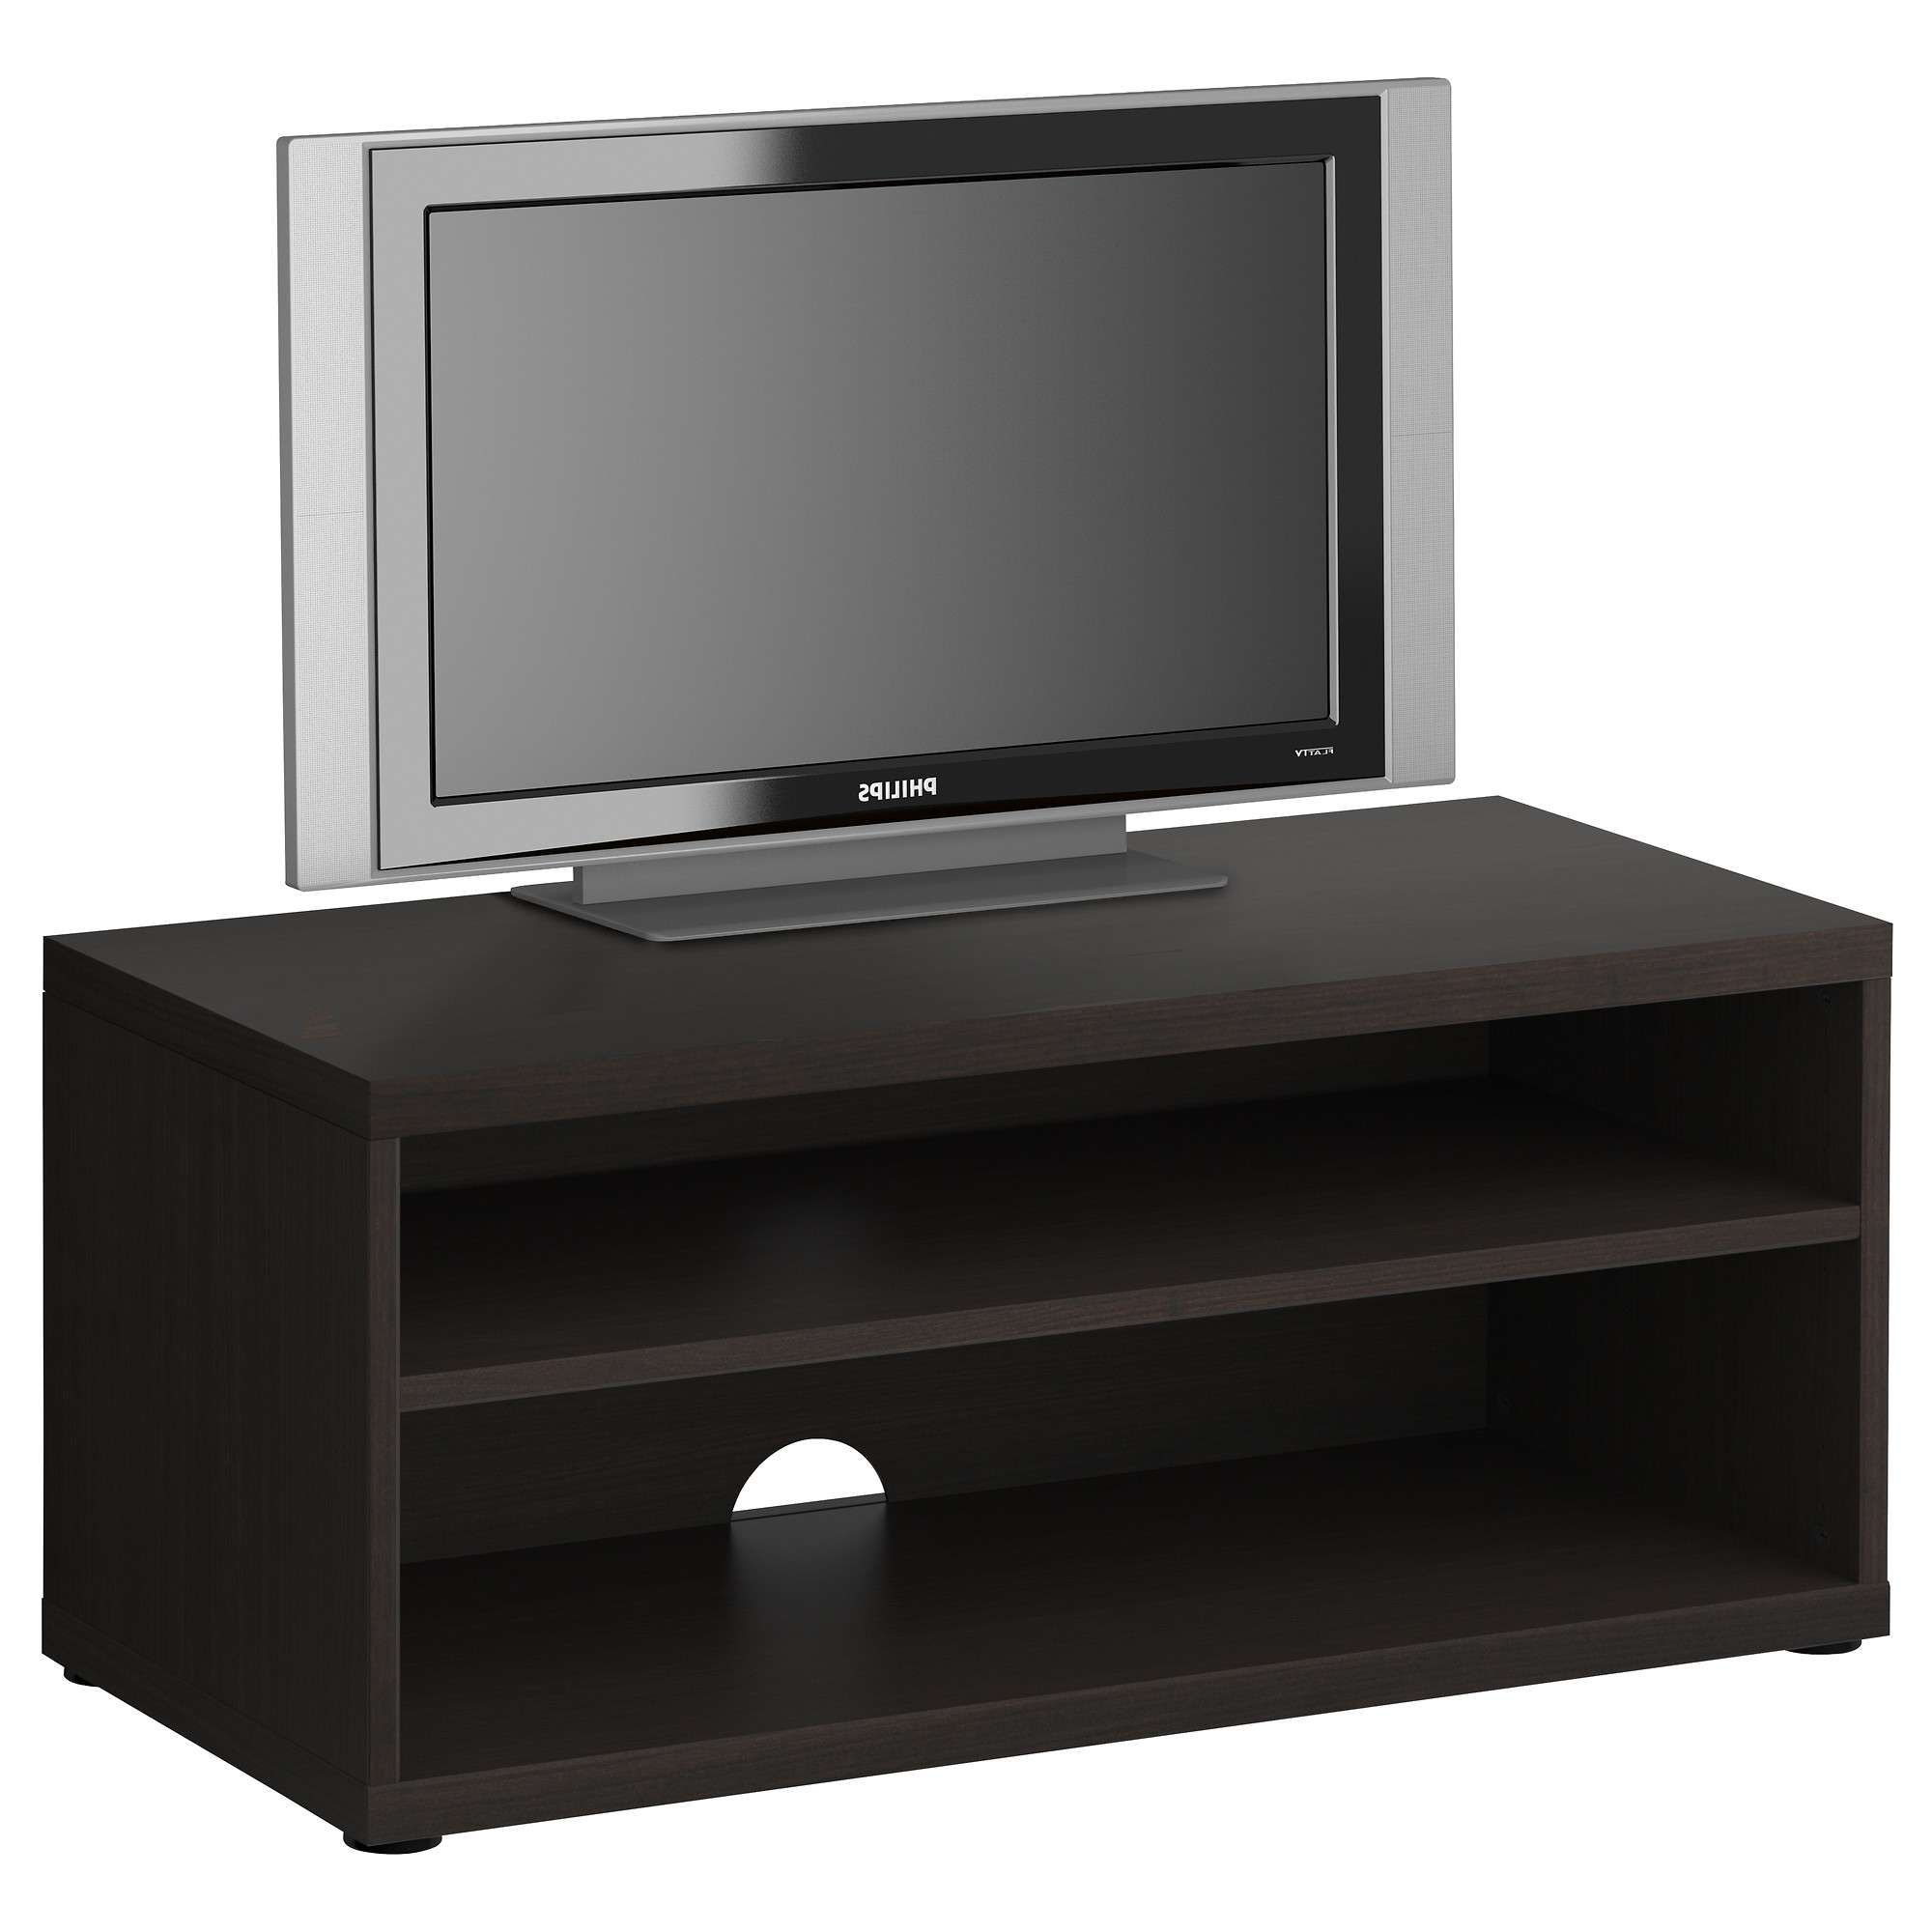 Mosjö Tv Bench Black Brown 90x40x38 Cm – Ikea Intended For Bench Tv Stands (View 5 of 15)